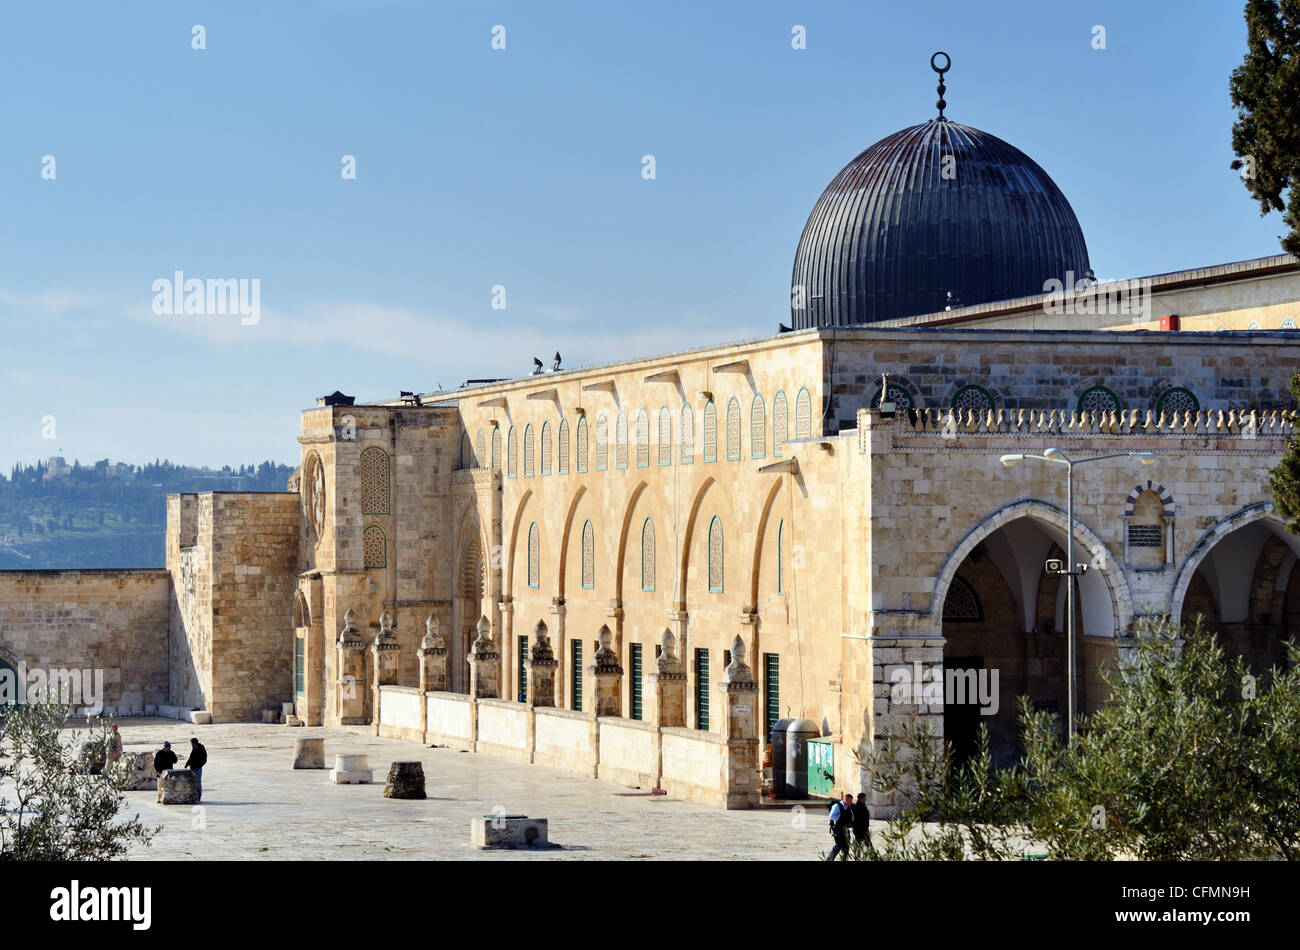 Al Aqsa Mosque in Jerusalem, the 3rd holiest site in Islam. - Stock Image